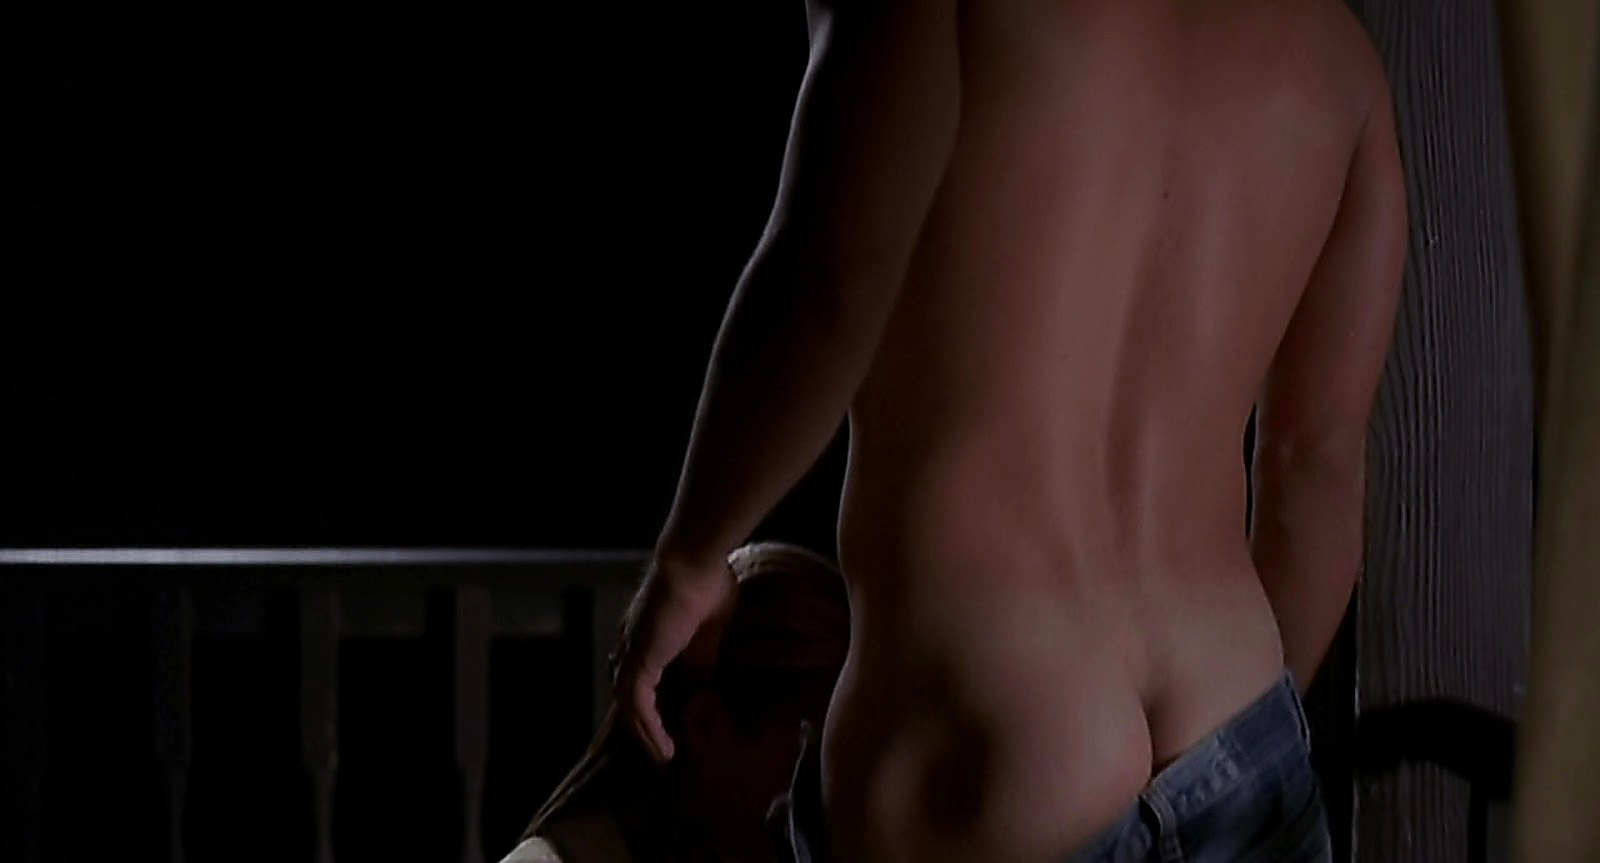 Greg Vaughan sexy shirtless scene March 20, 2019, 2pm